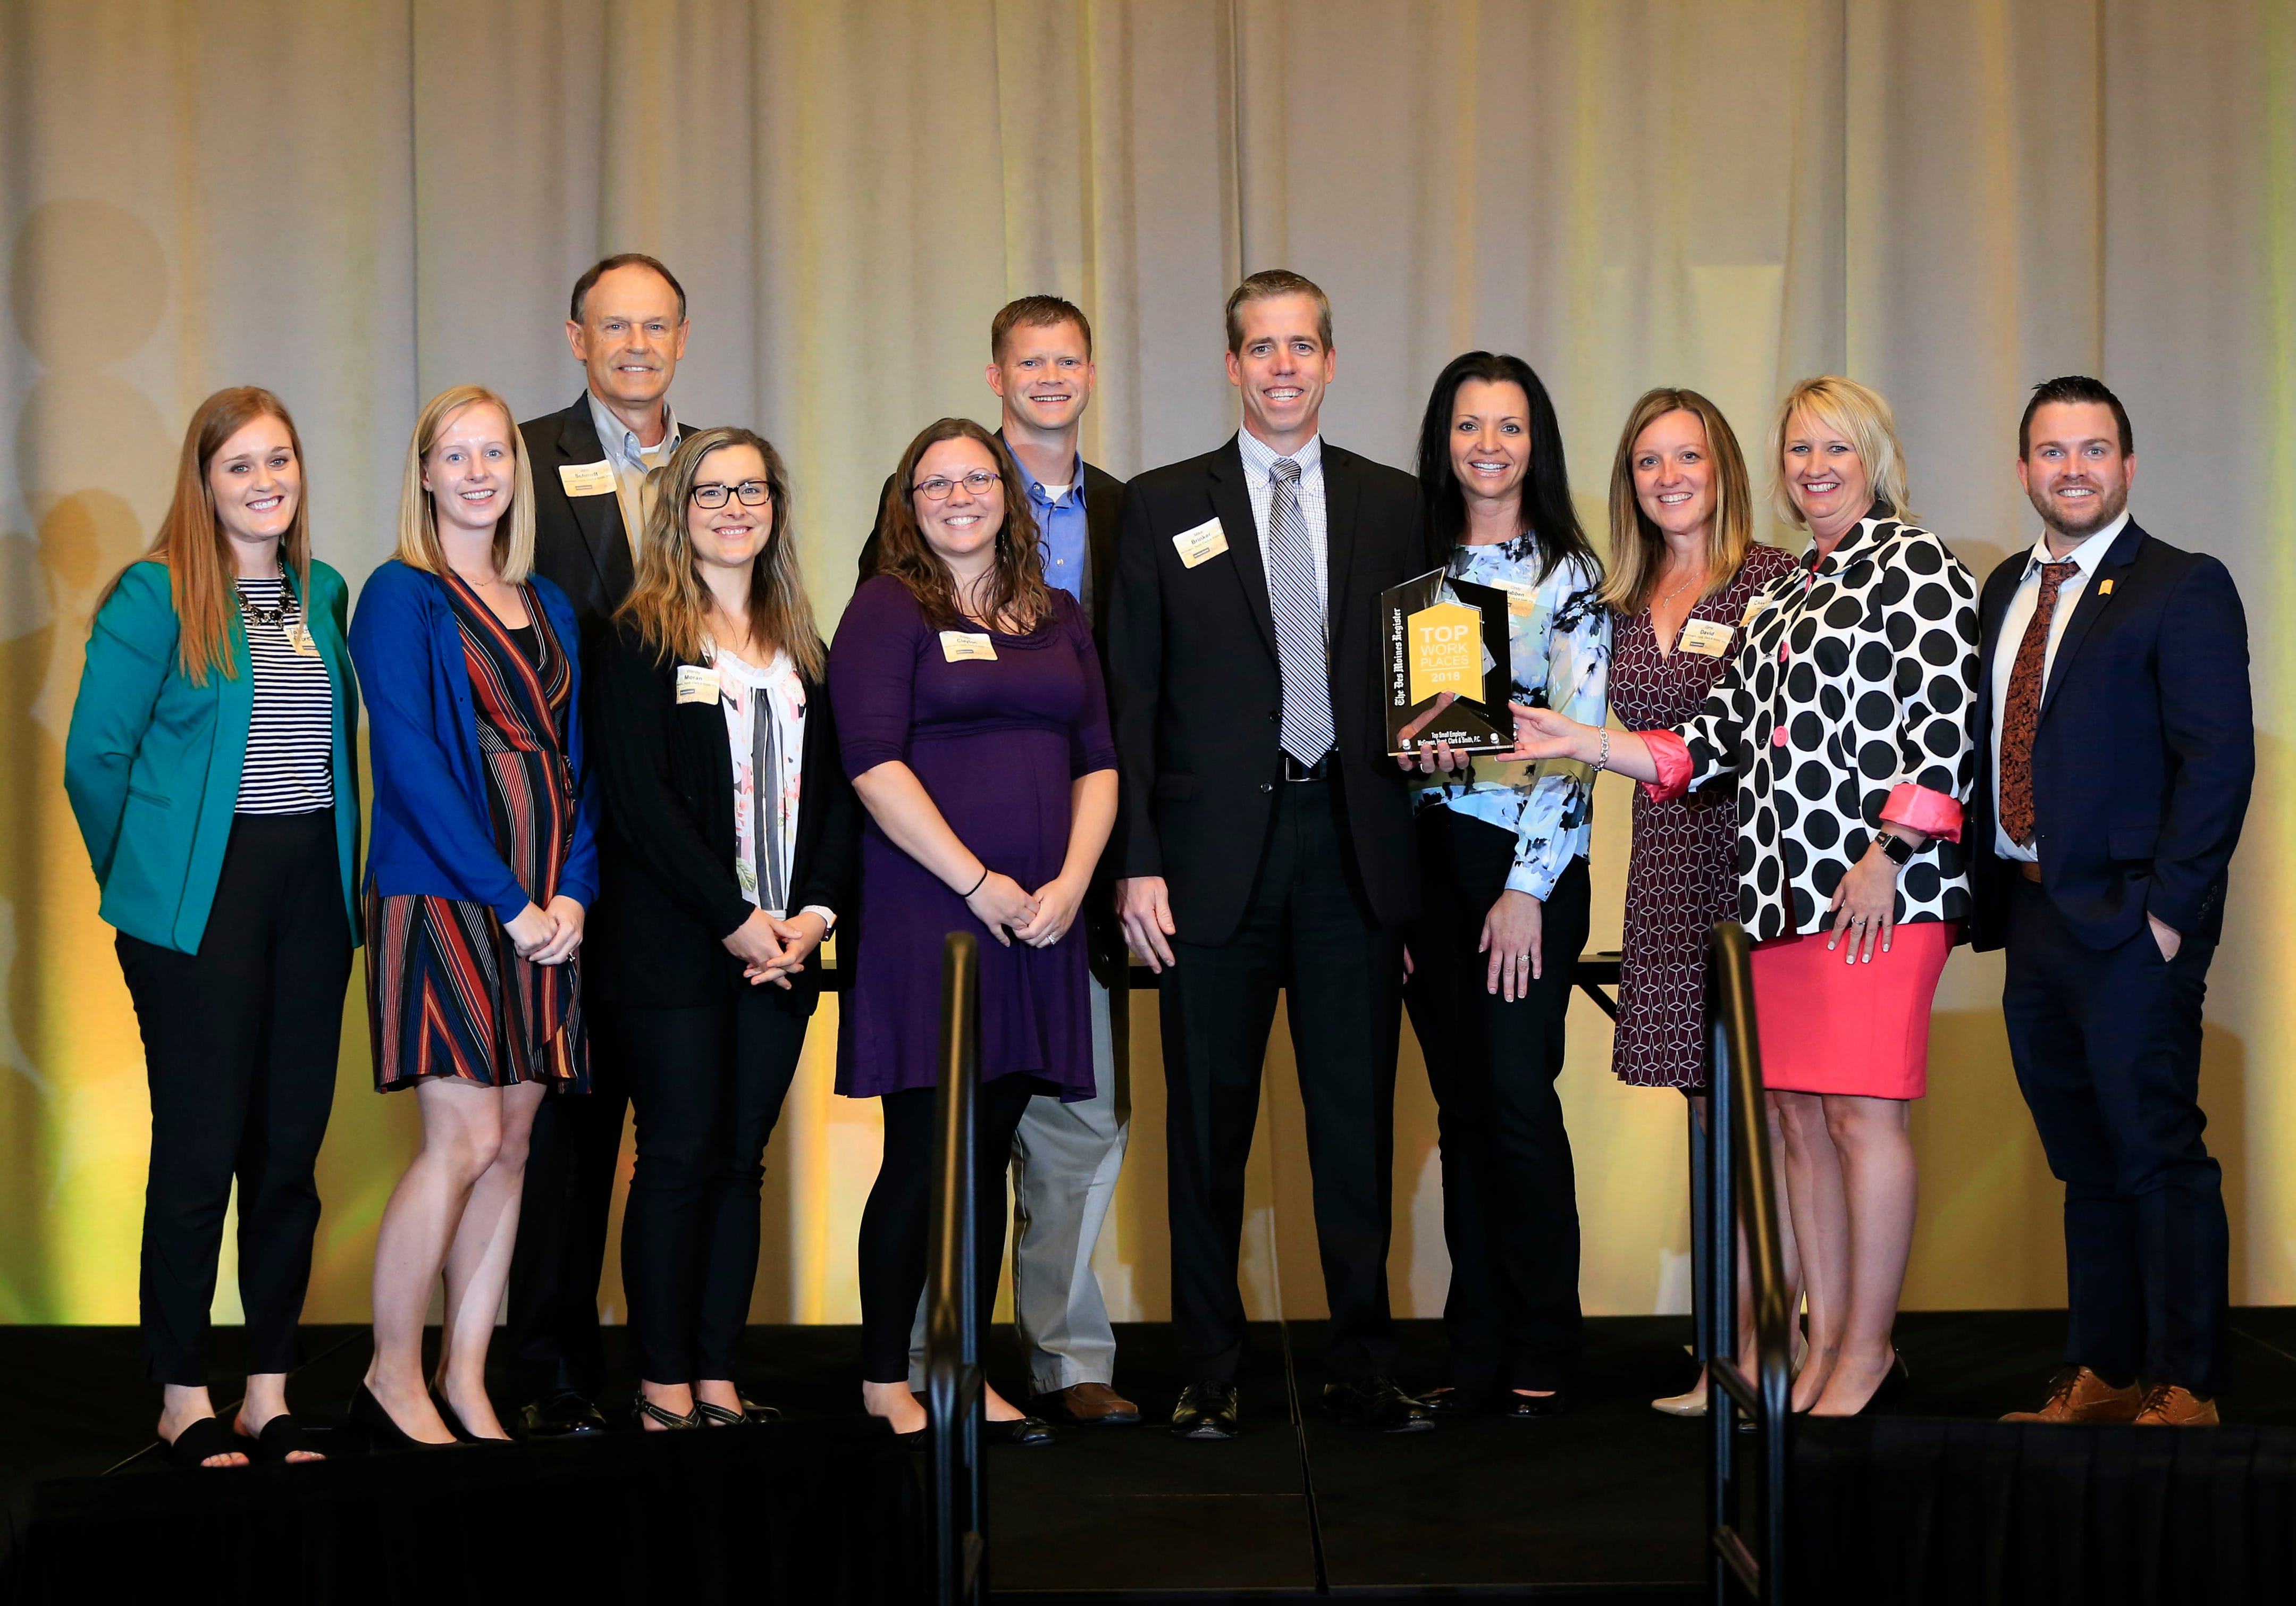 McGowen, Hurst, Clark and Smith, P.C. wins the tops small employer award during the 2018 Top Workplaces awards ceremony in Des Moines.